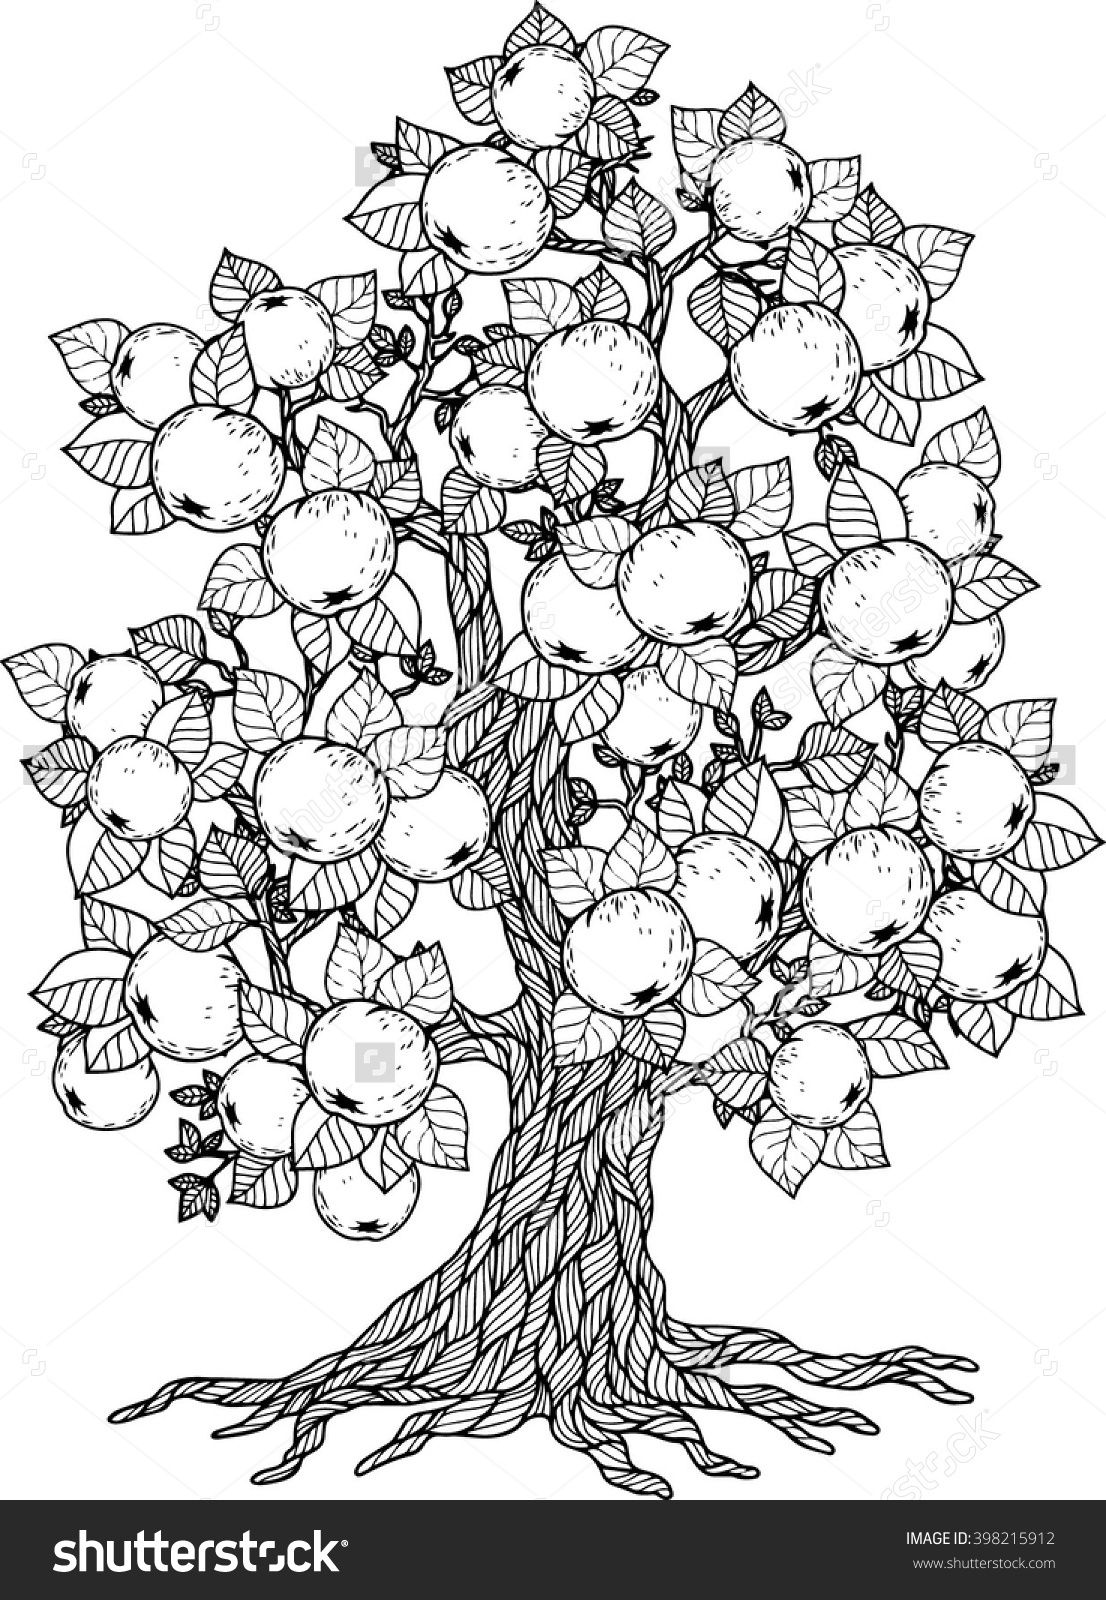 Apple Tree. Vector Elements. Coloring Book For Adult. Doodles For Meditation